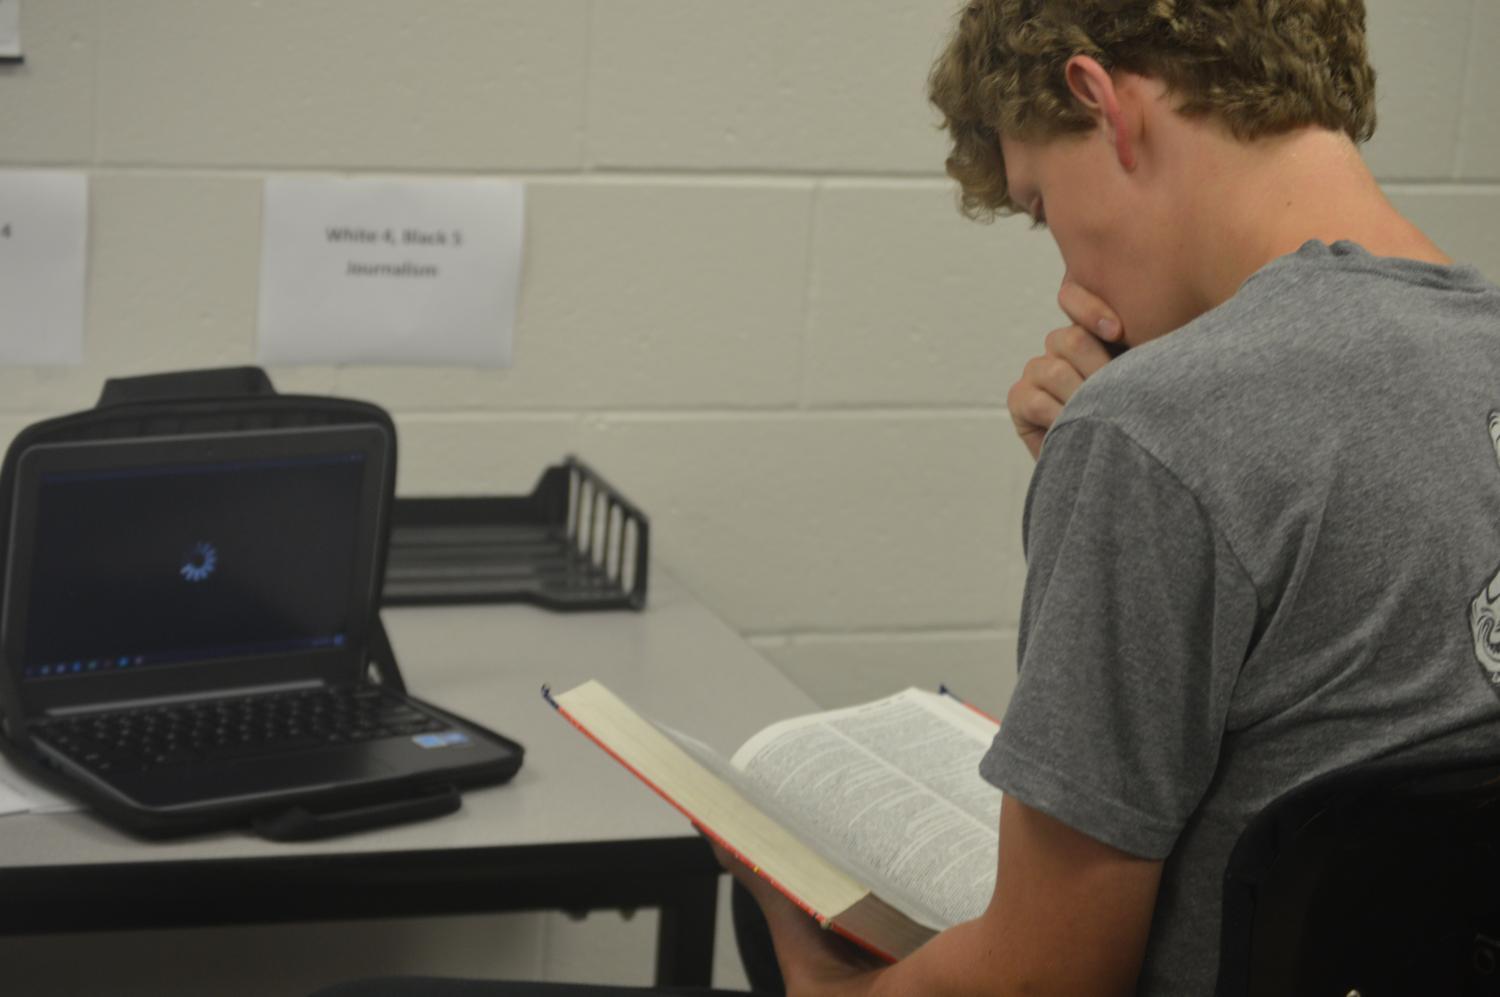 Senior Ethan Vanhalen II resorts to reading the dictionary as Bloons Tower Defense 5 struggles to load on his chromebook.